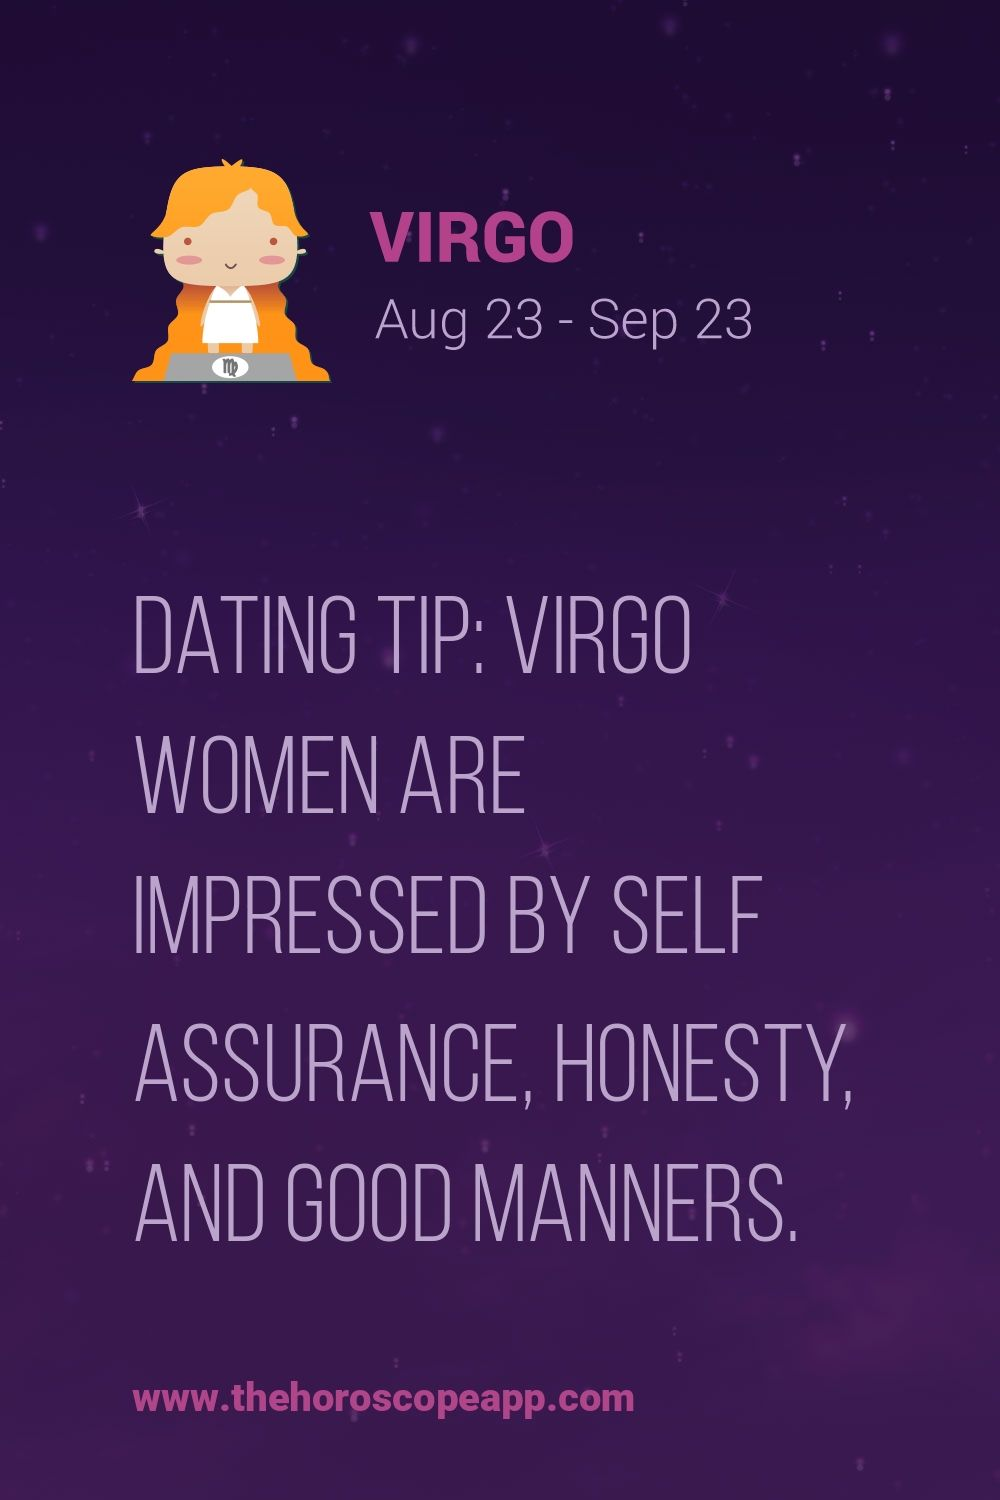 Tips for dating a virgo woman